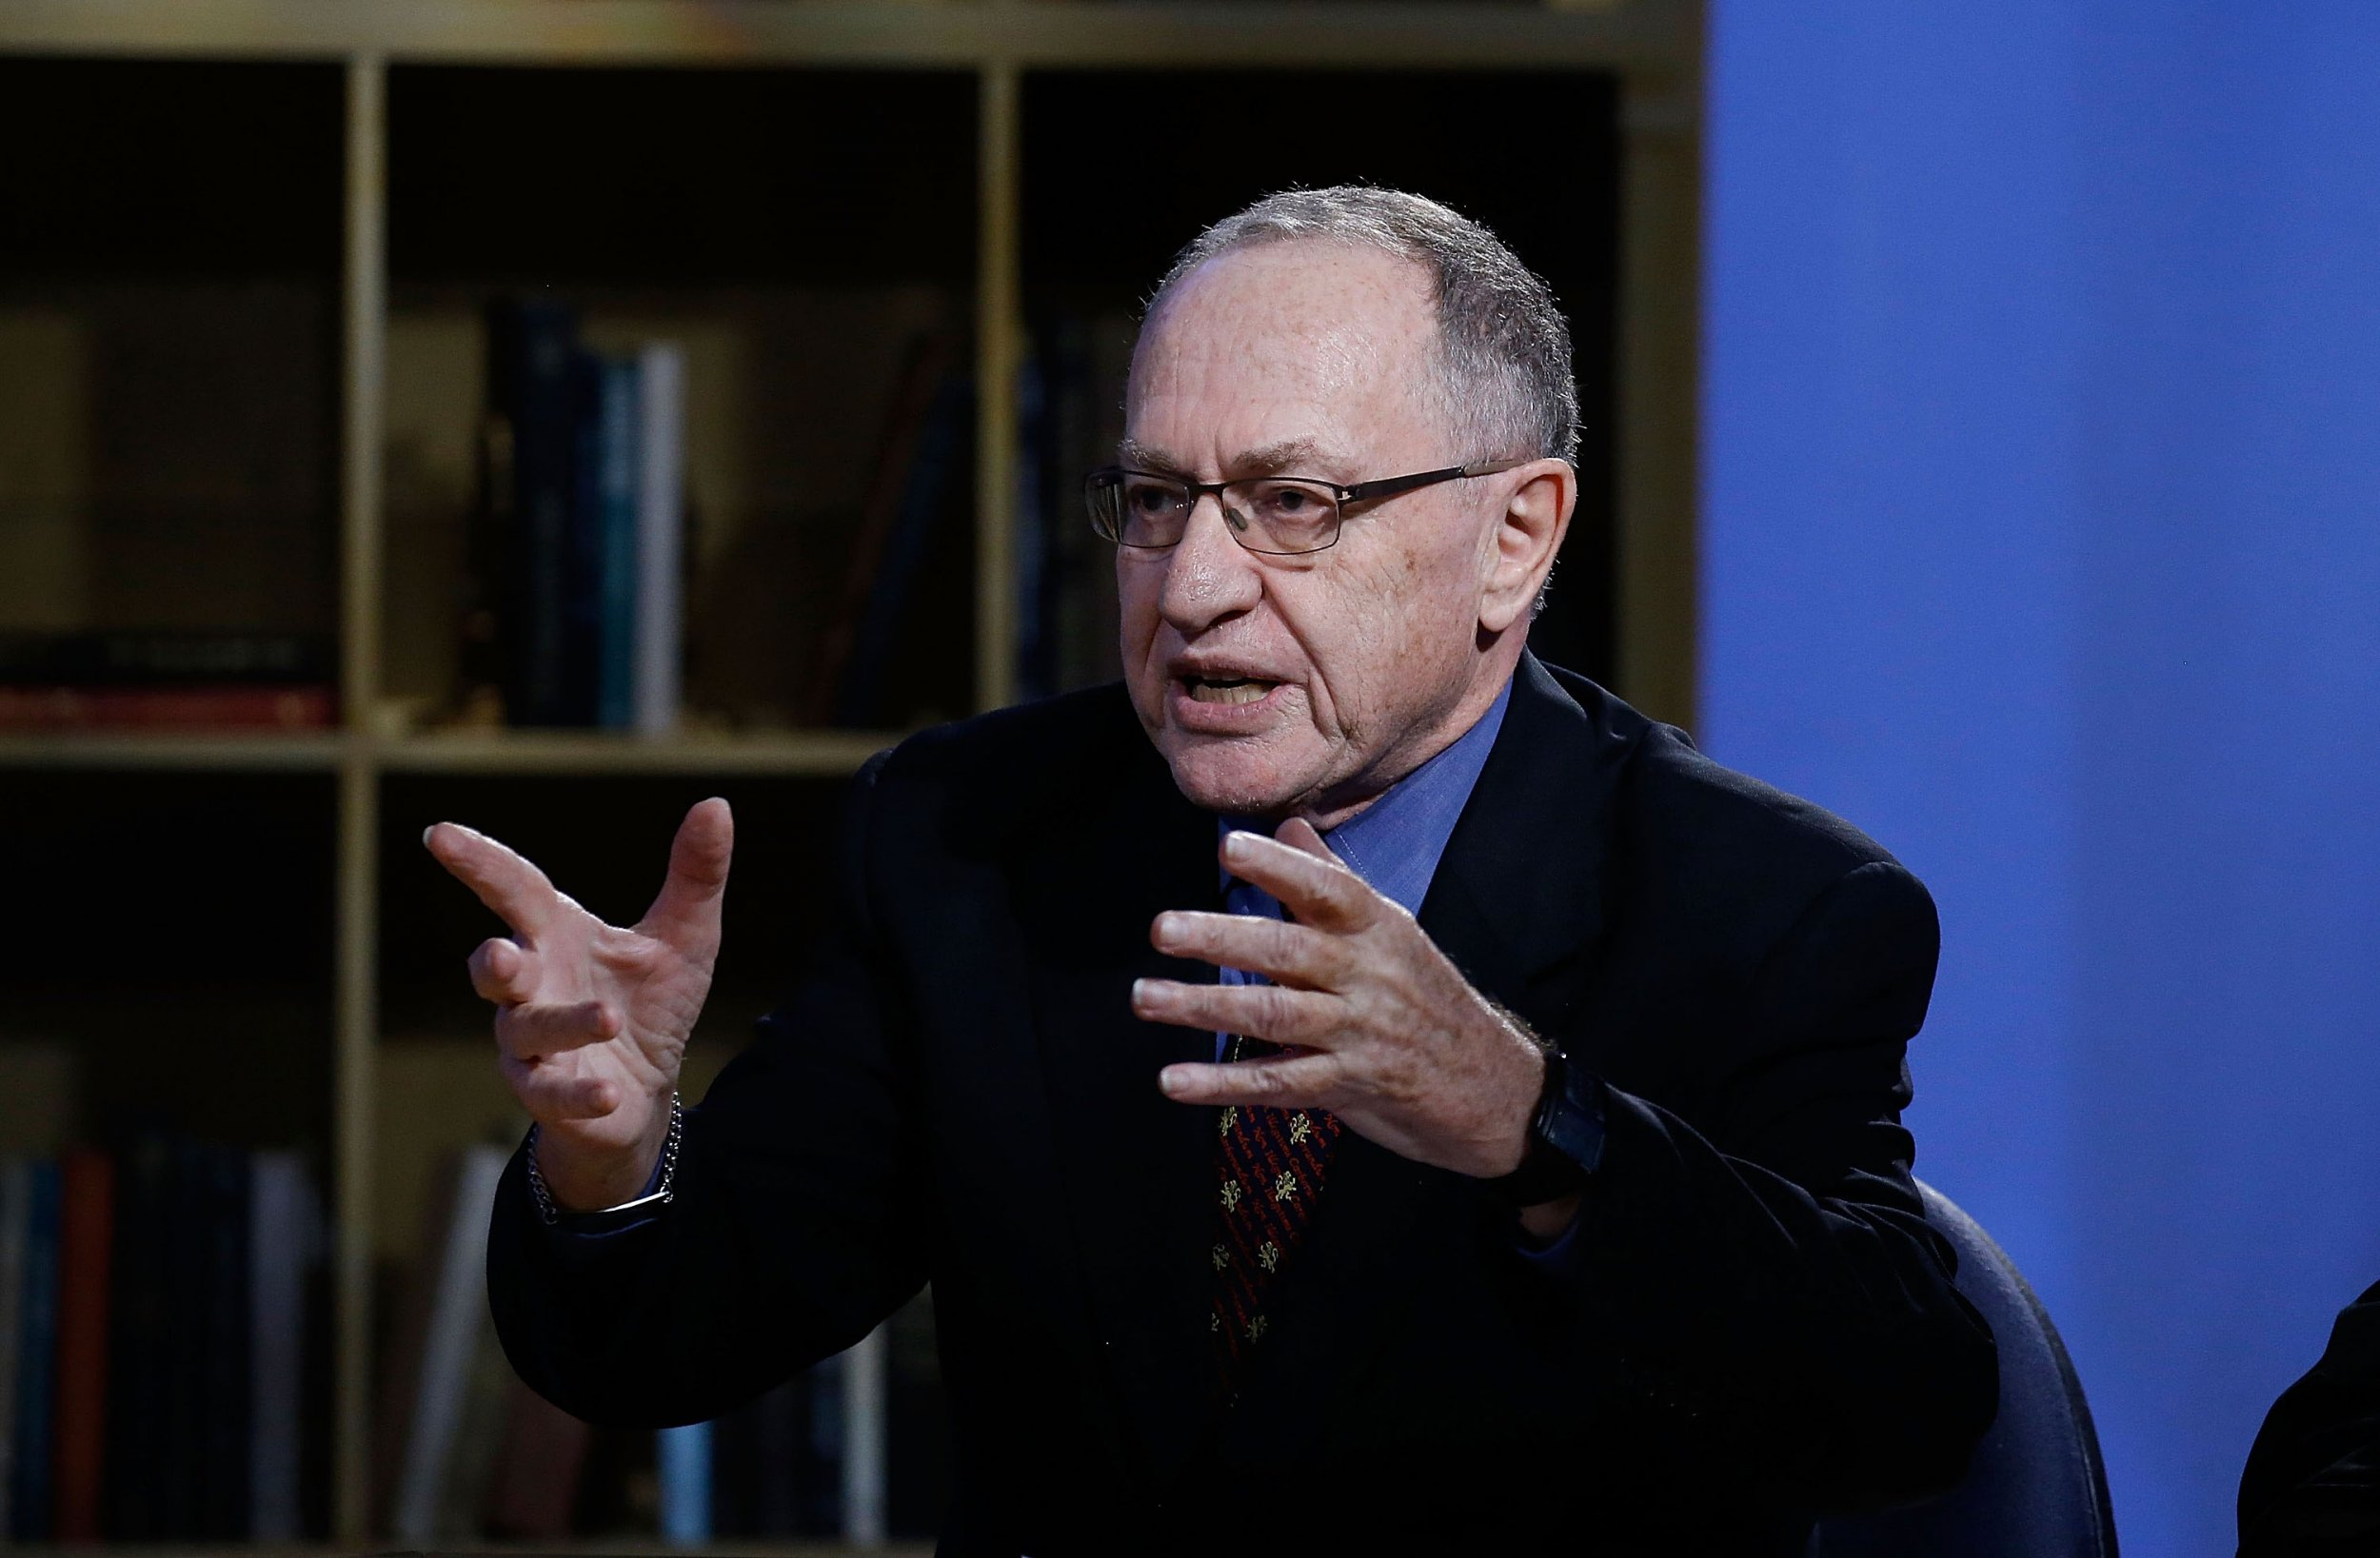 Mueller Purposely Putting Trump in 'Bad Light,' Collusion 'Not a Crime,' Says Alan Dershowitz After Mueller Bombshells